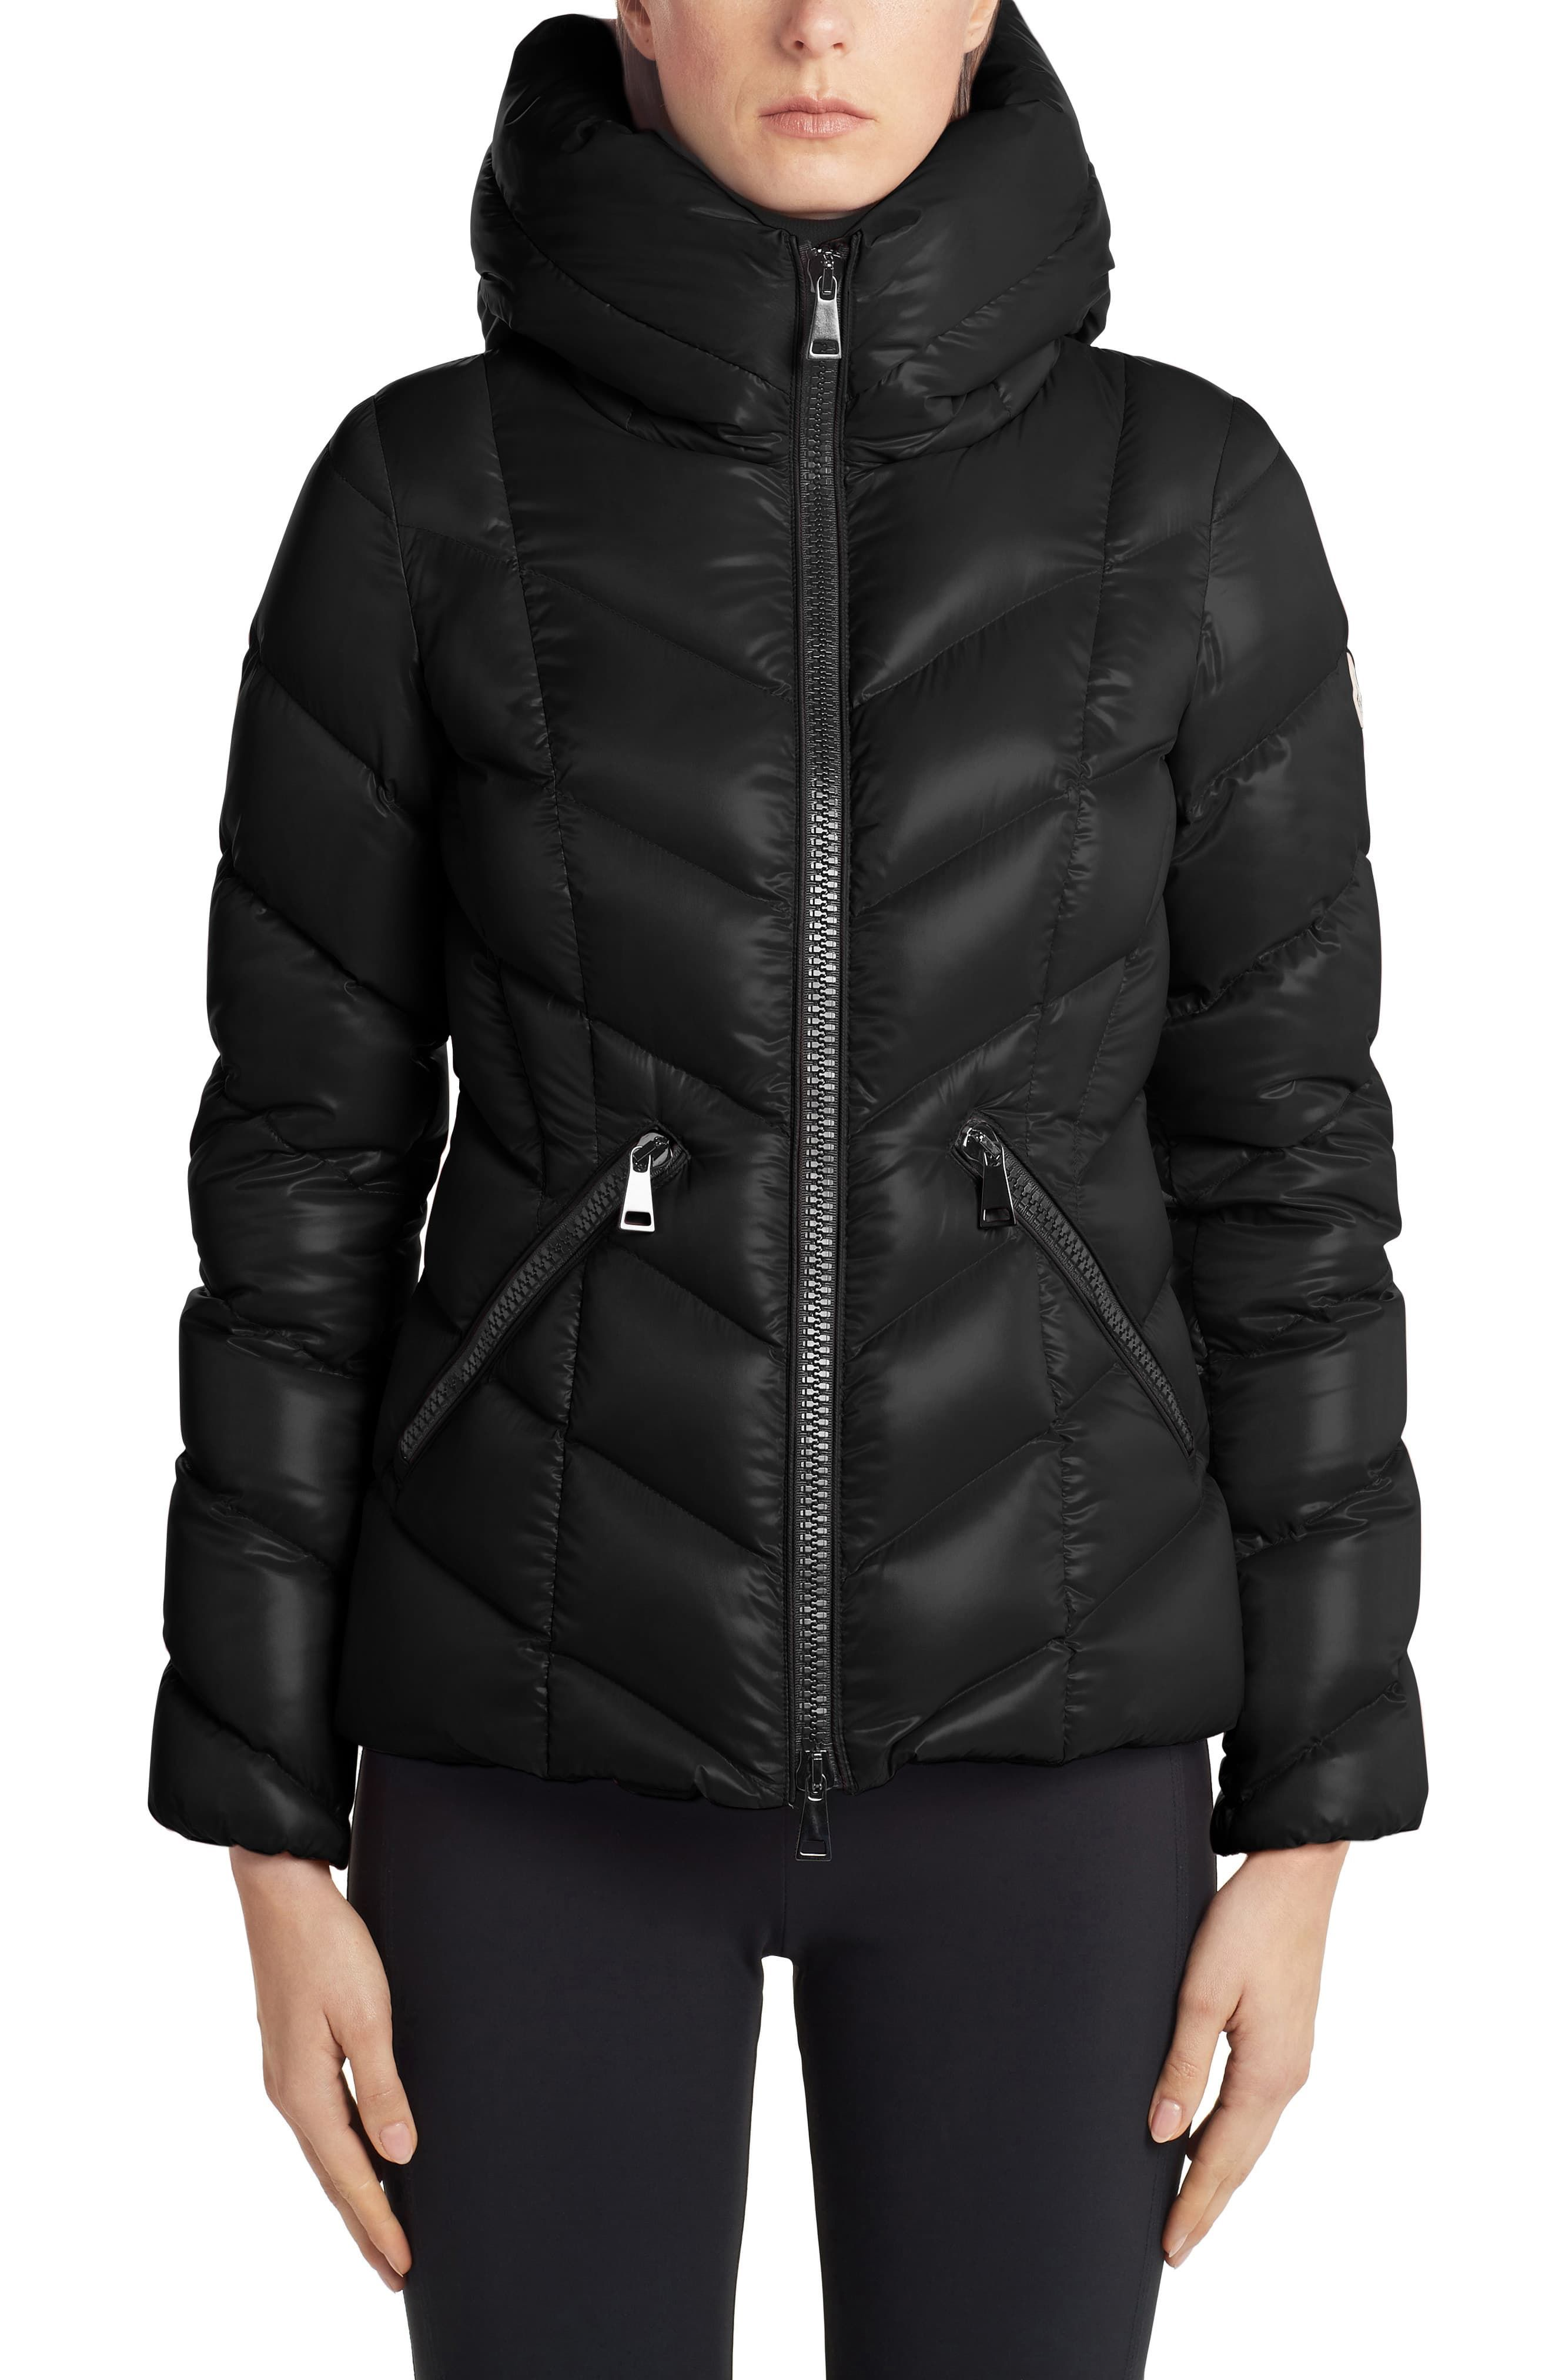 Moncler Fulig Quilted Down Puffer Jacket available at